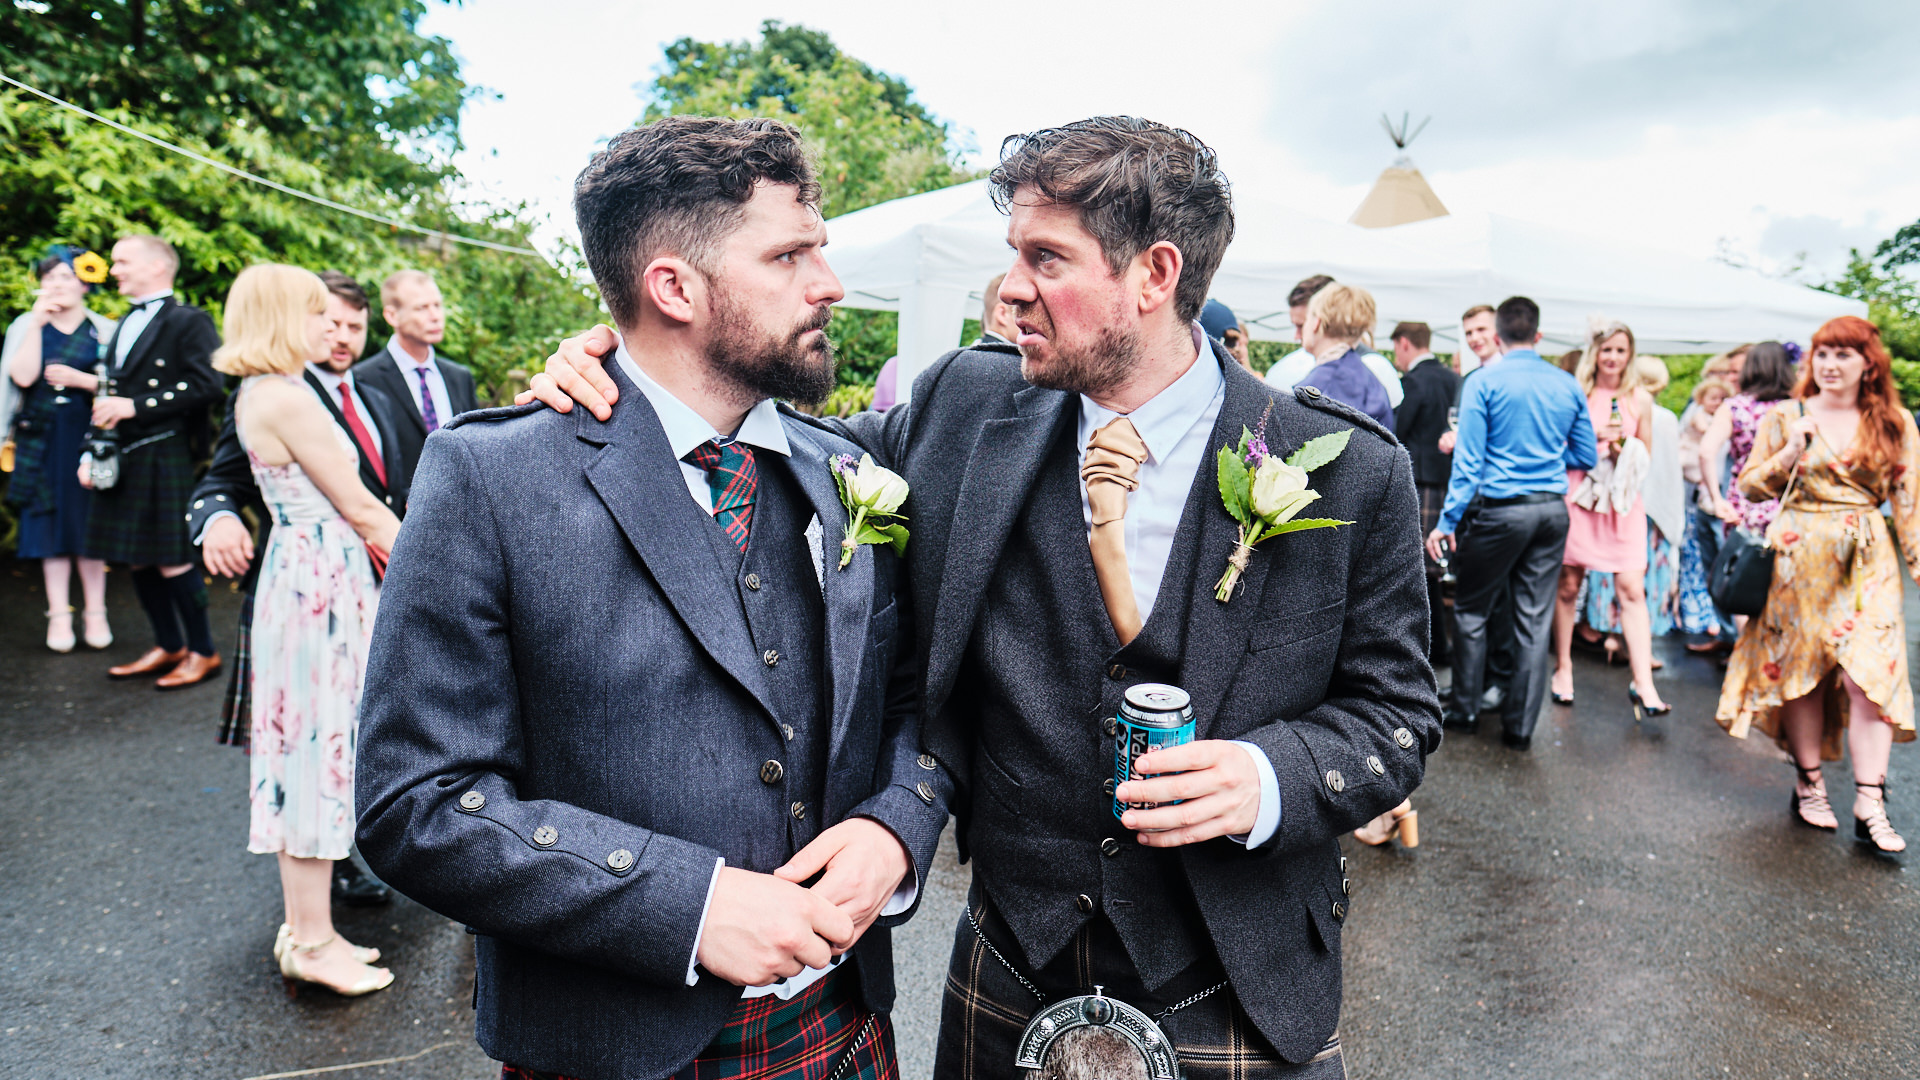 colour photograph of the bride groom and his best man standing in the rain after the wedding ceremony